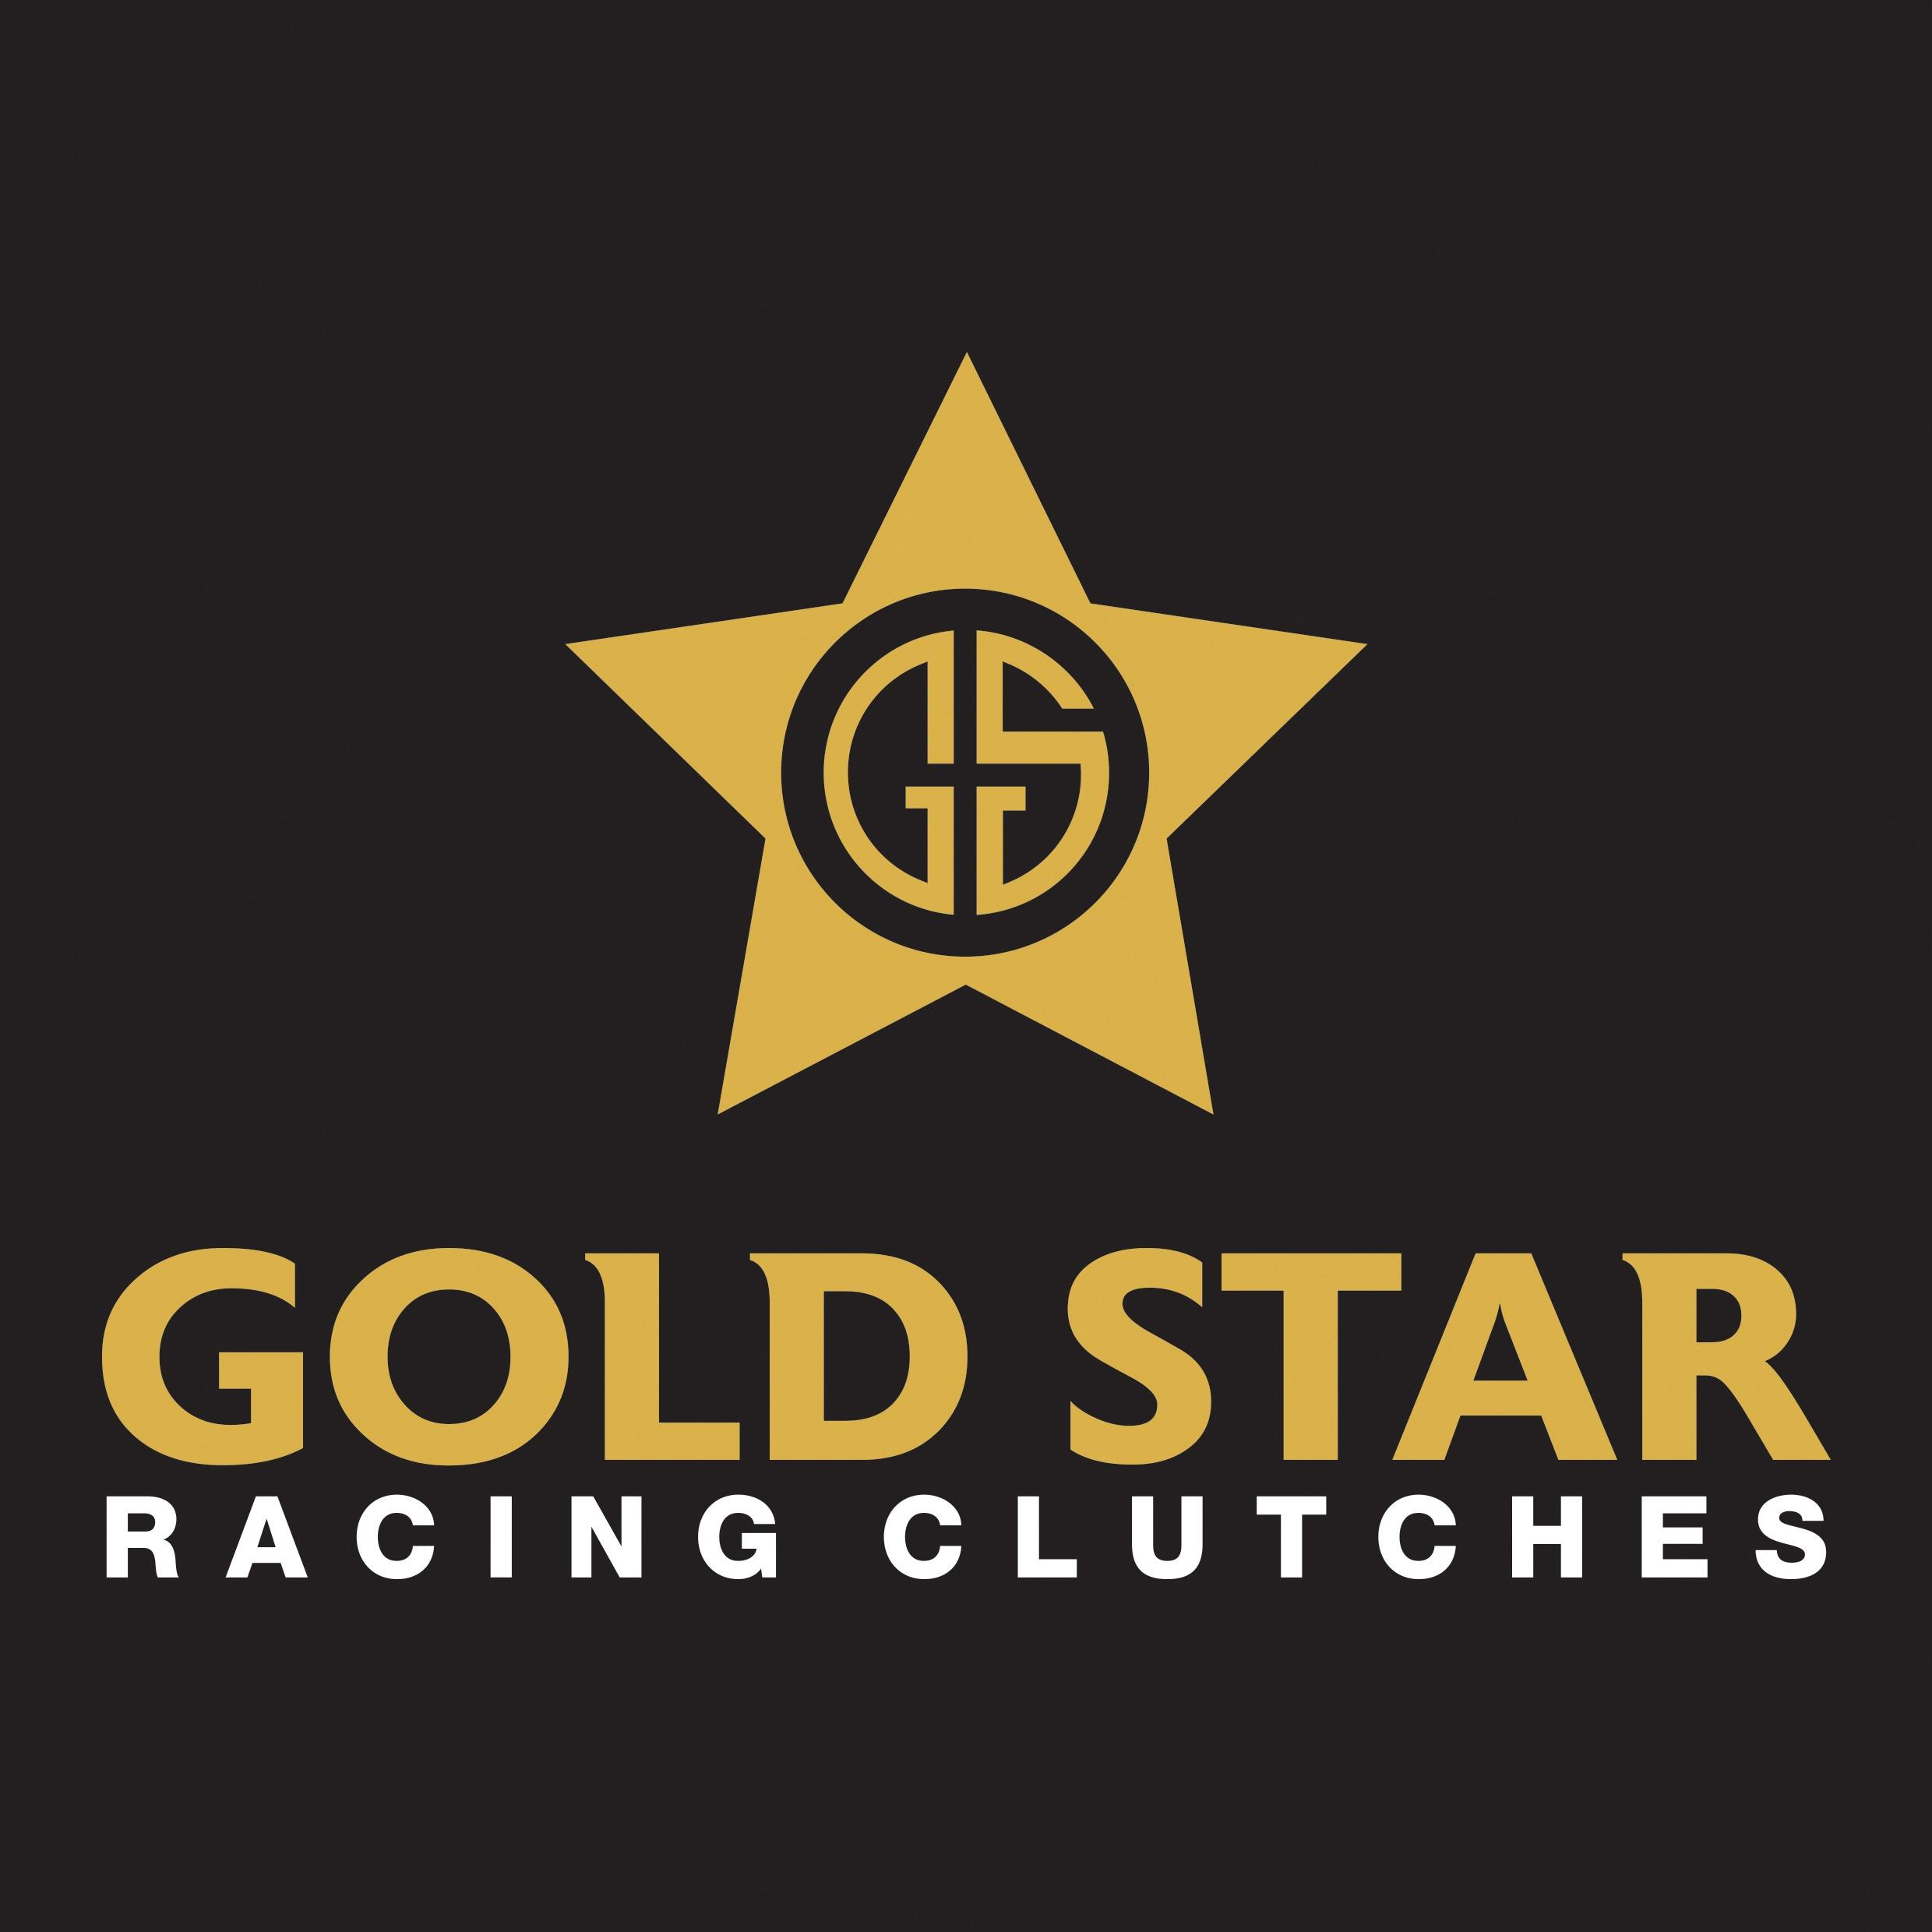 gold star racing clutches